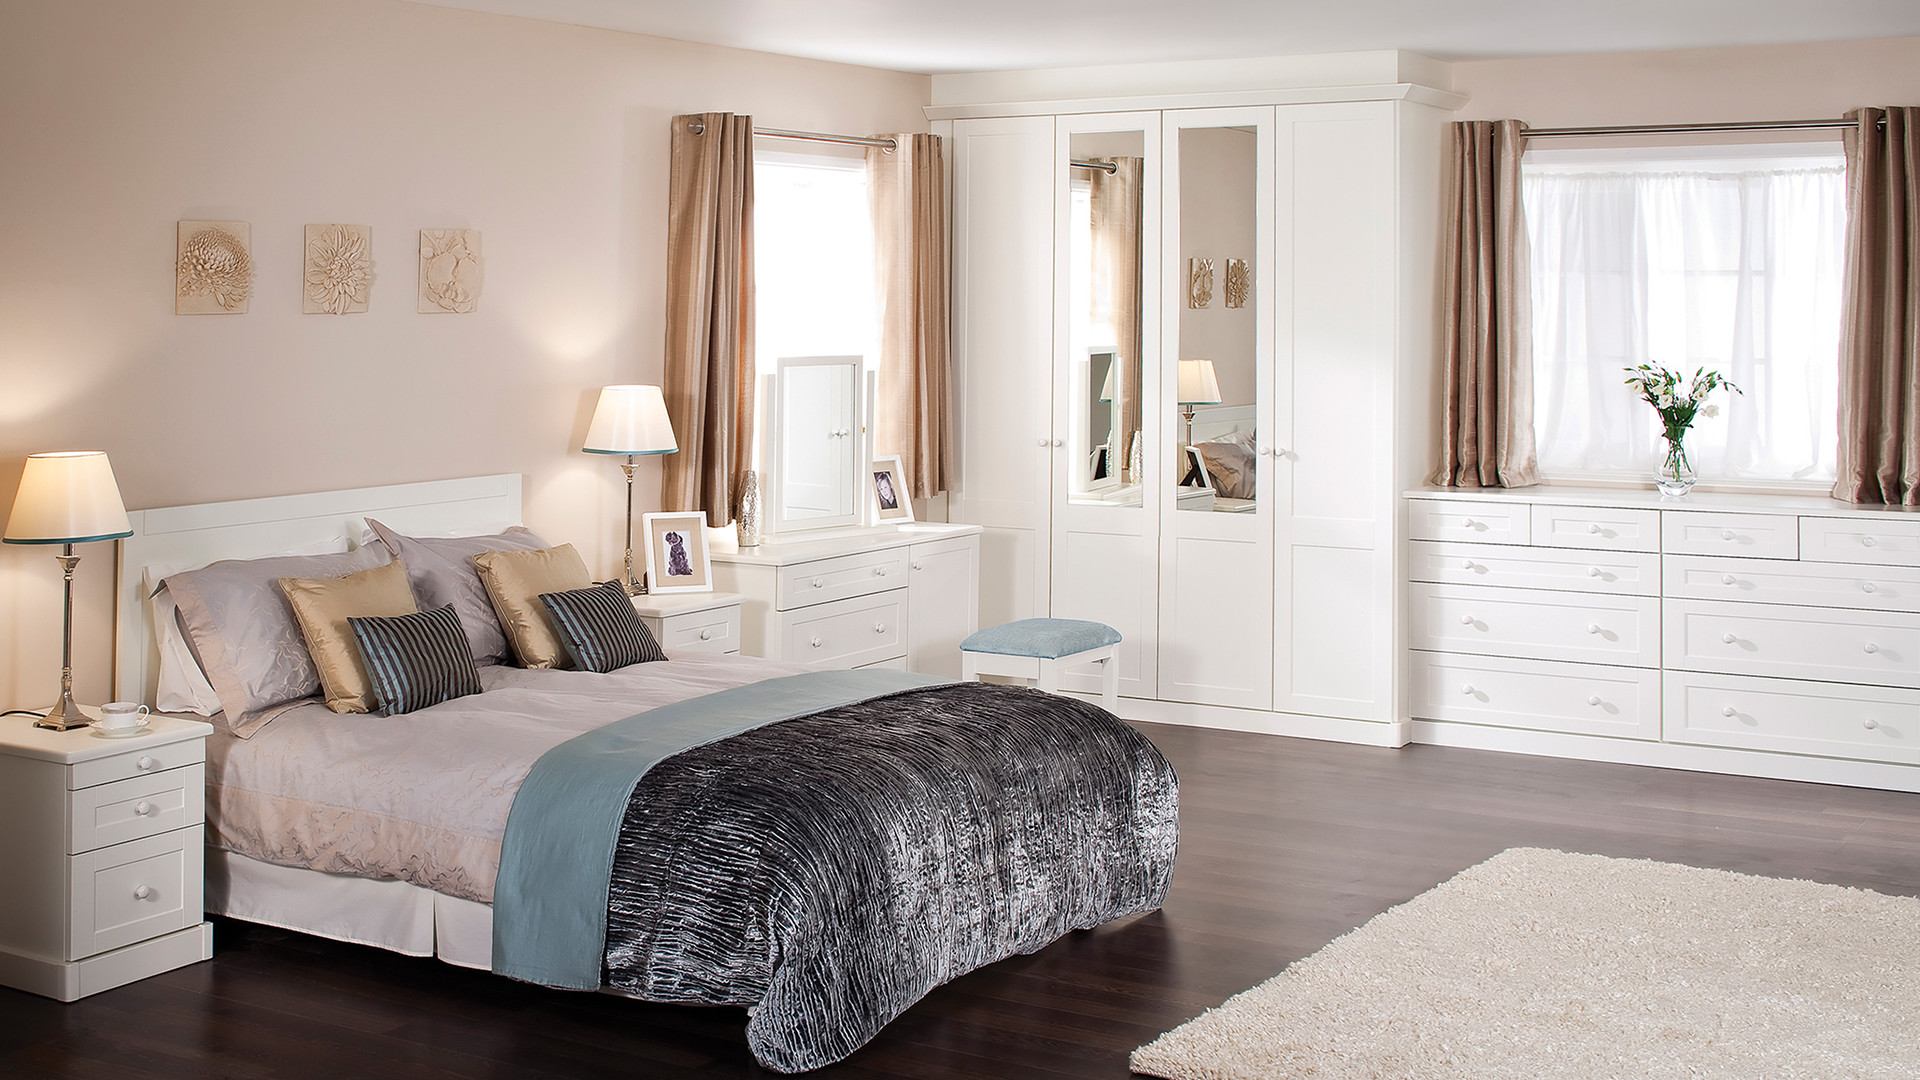 Magnificent Fitted Bedroom Furniture Wardrobes Uk Lawrence Walsh Download Free Architecture Designs Intelgarnamadebymaigaardcom